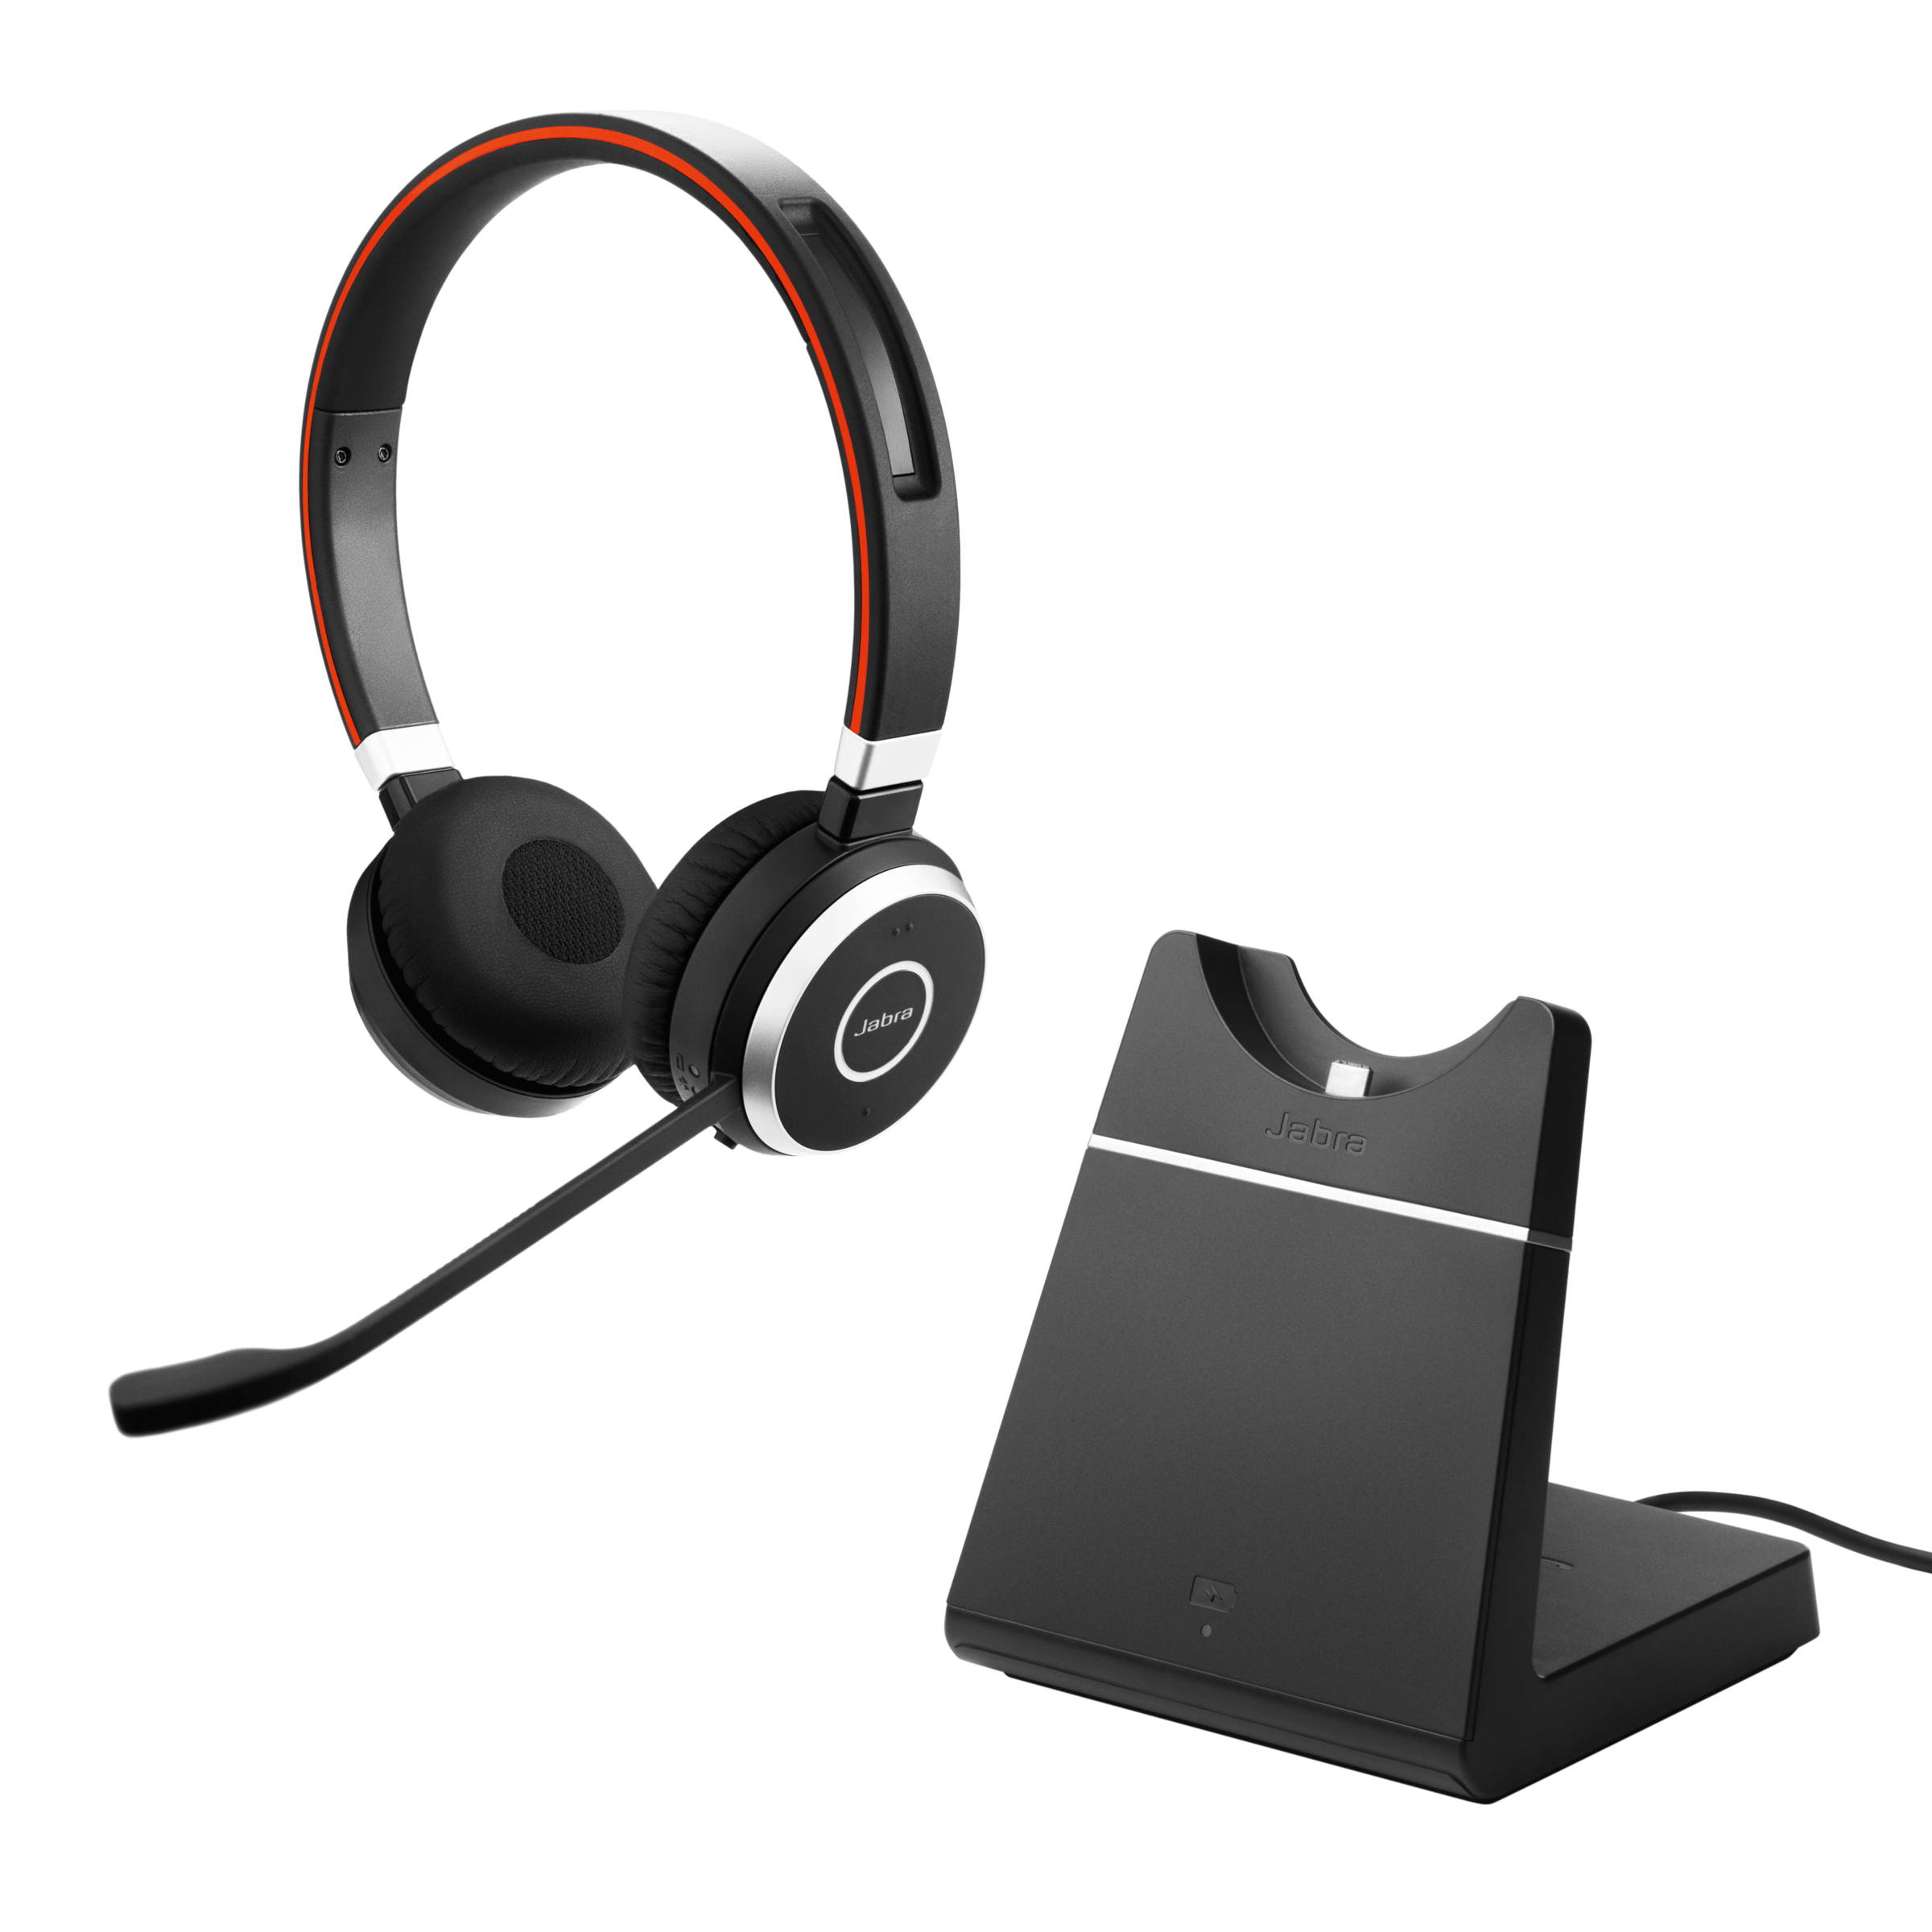 Jabra_Evolve_Duo_With_Charging_Stand.png